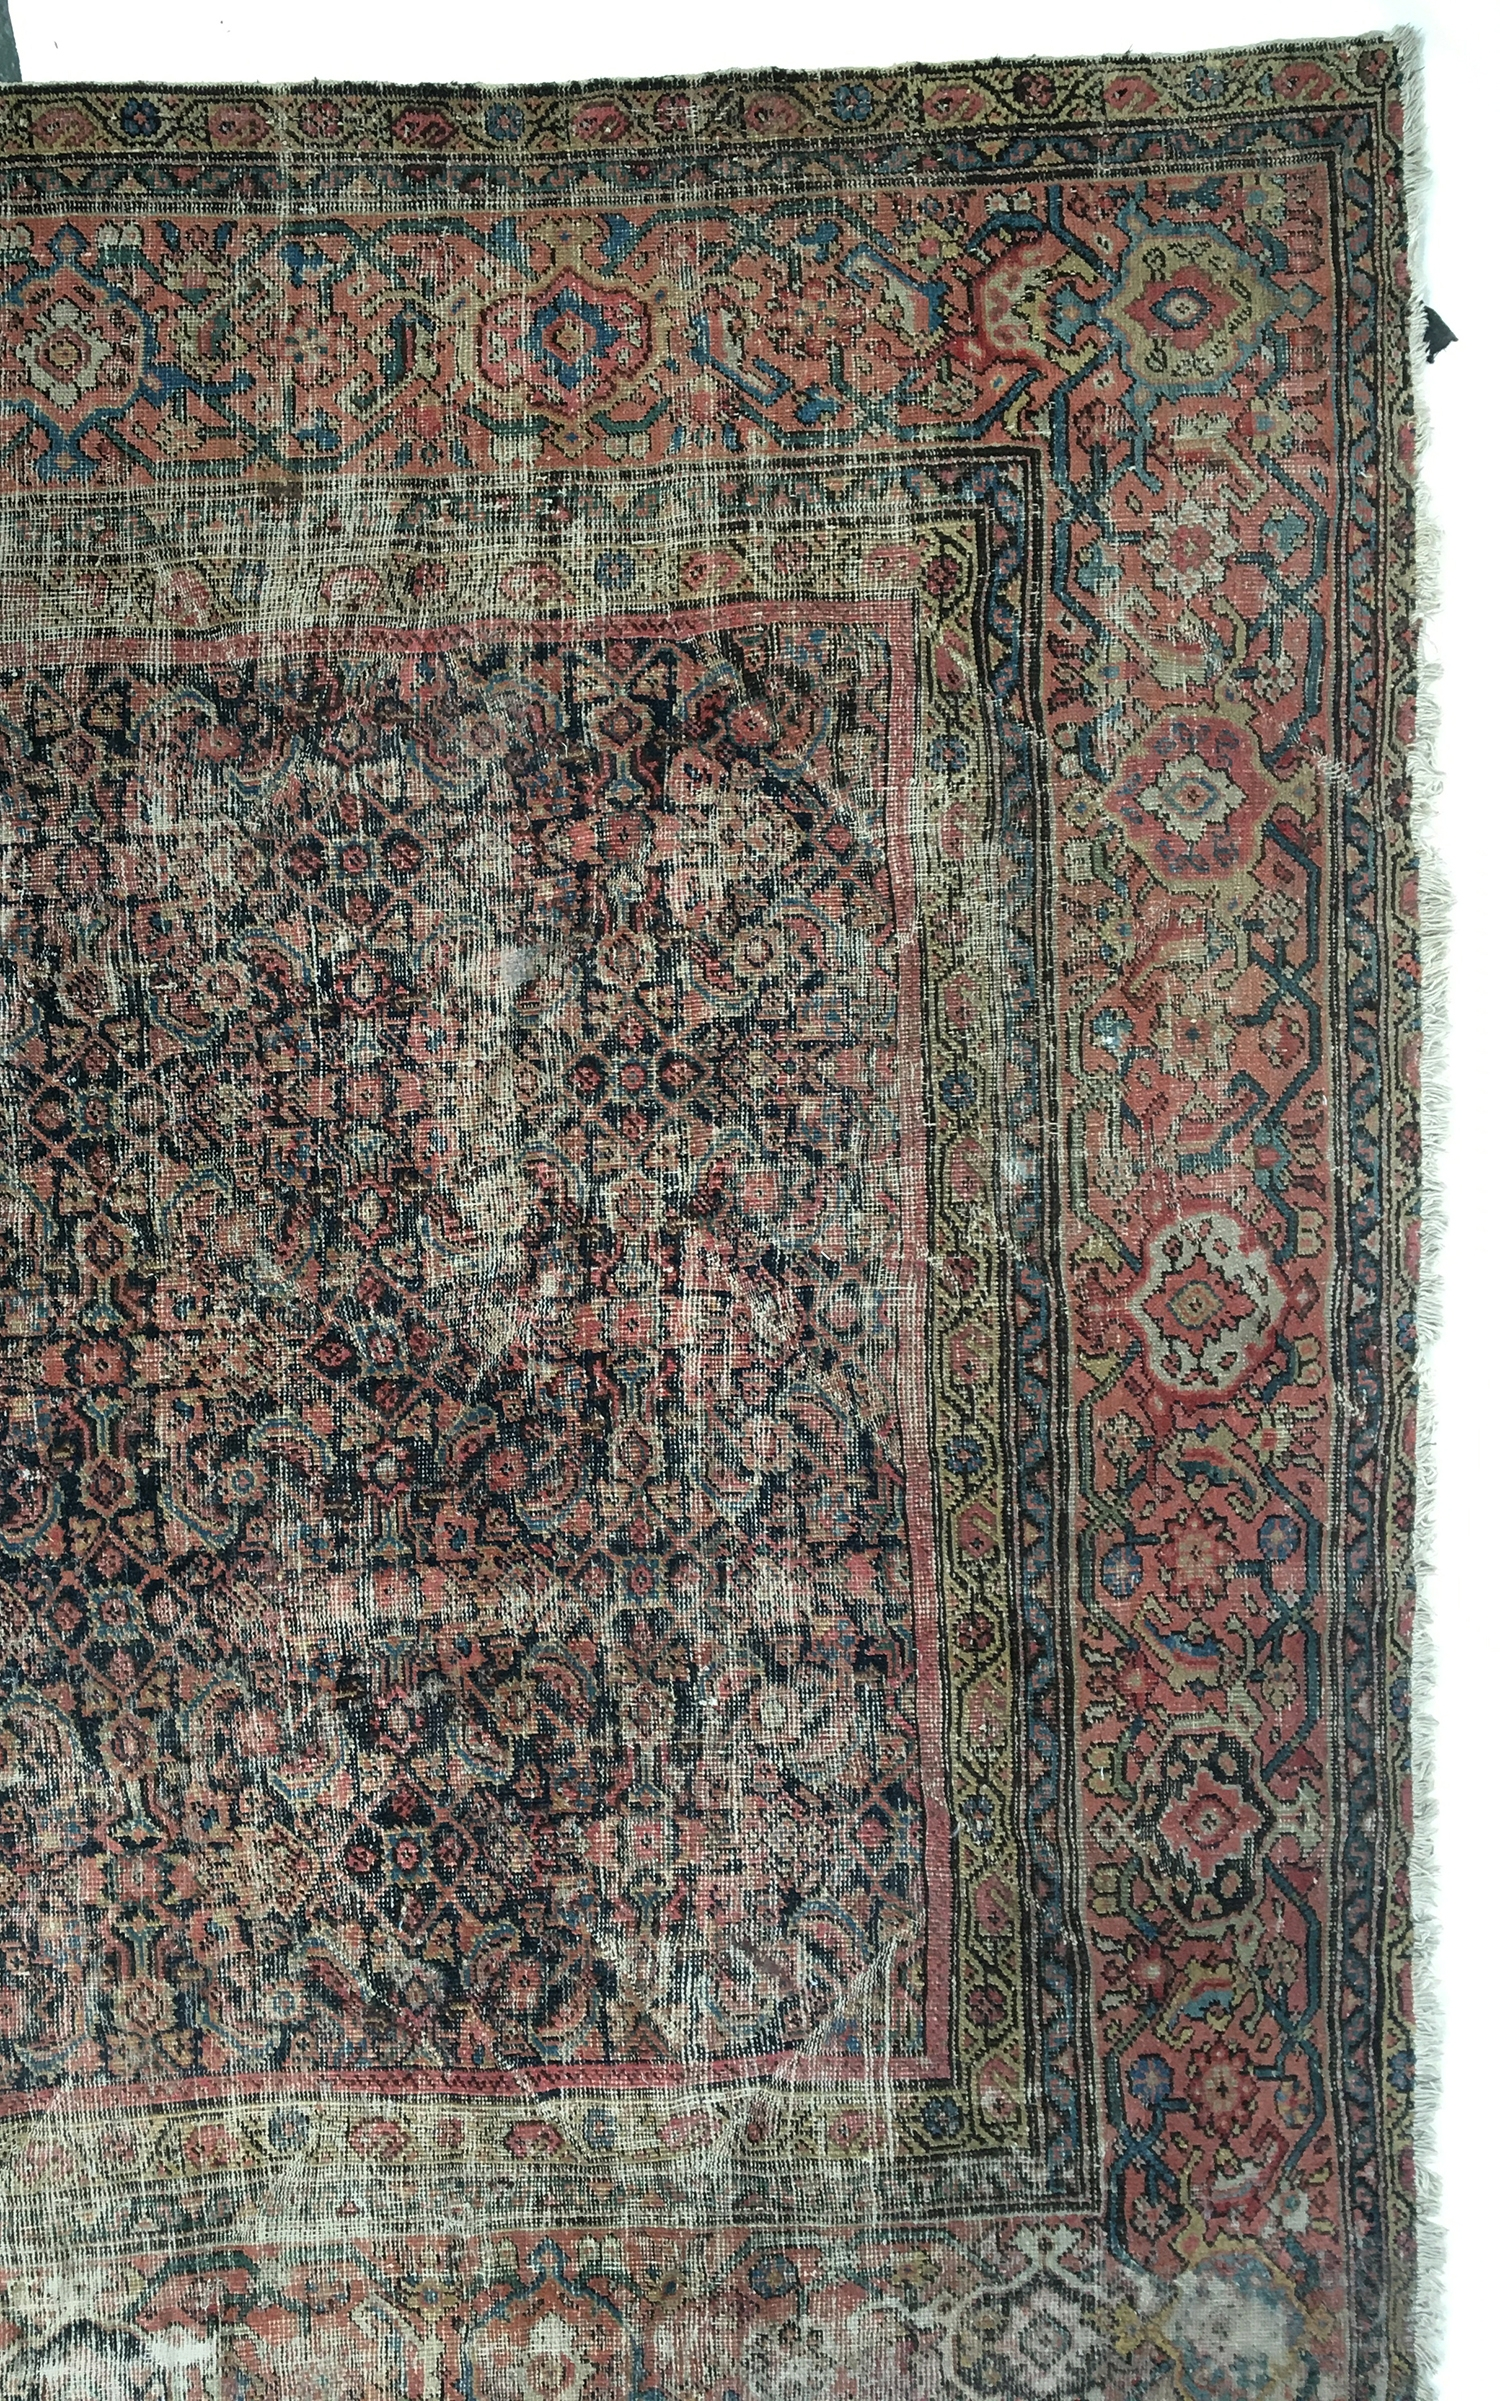 A large Ziegler mahal rug, 260x310cm - Image 2 of 2